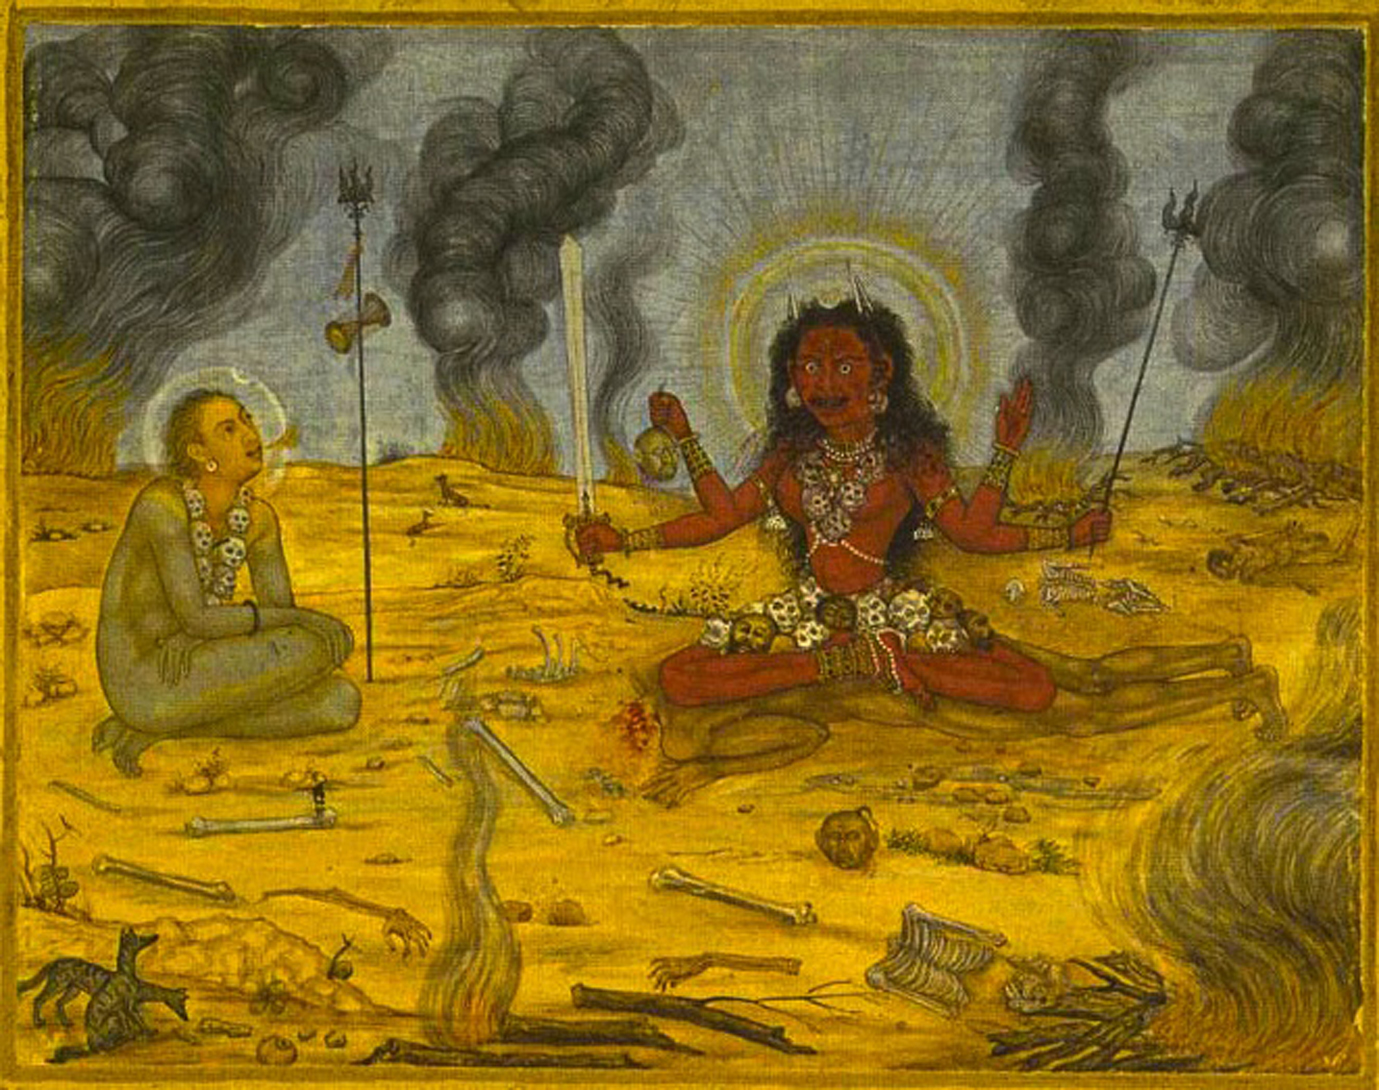 Jackals, Goddesses and Yogis: Cremation Ground Asceticism in South and East Asian Tantra